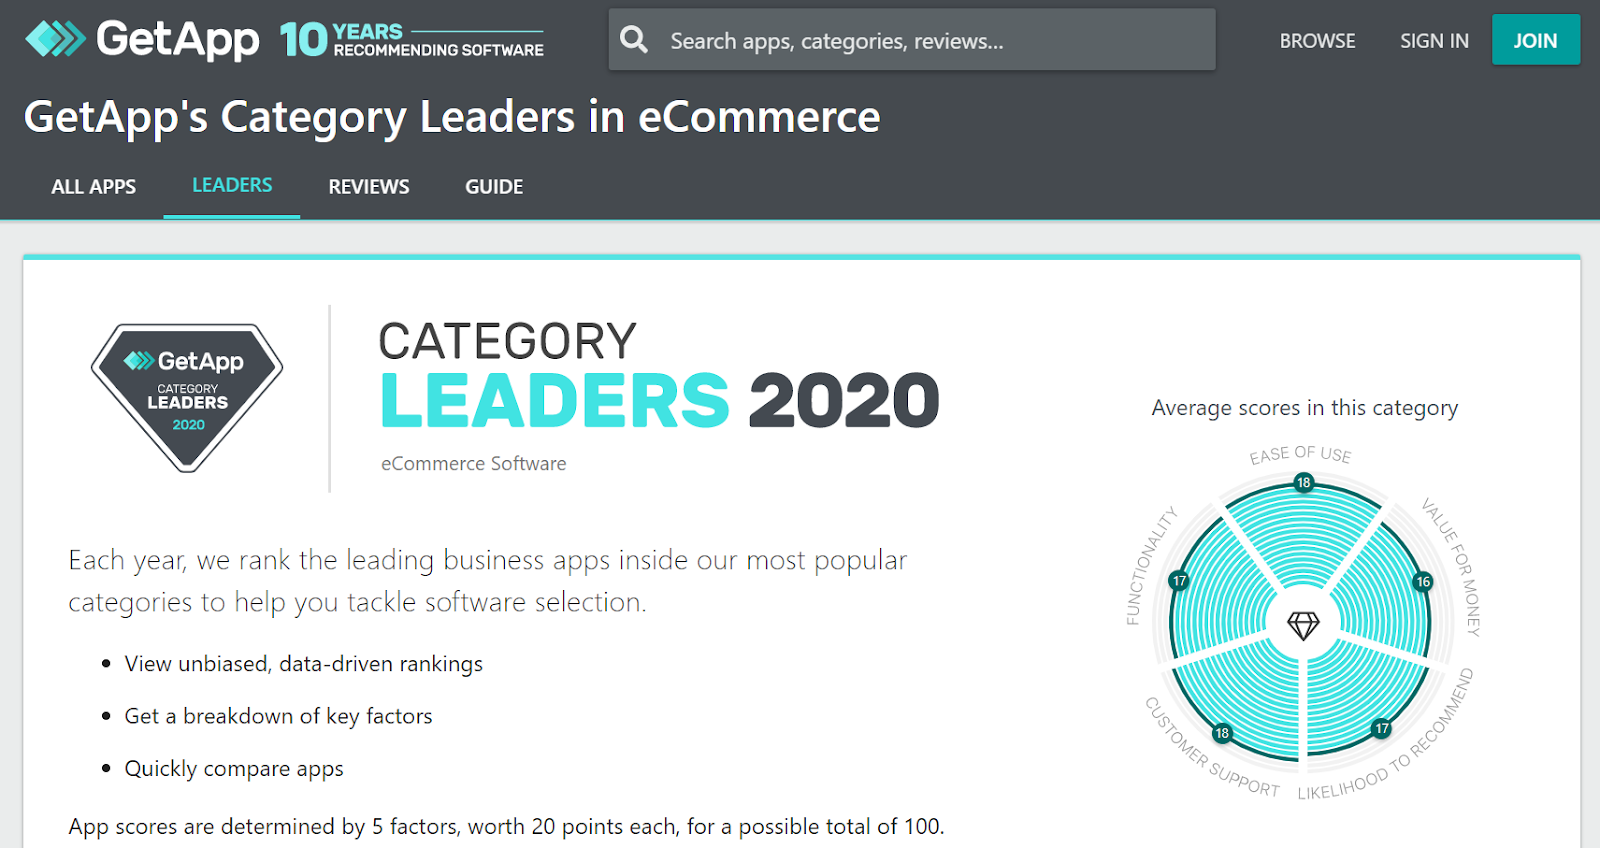 GetApp's eCommerce Category Leaders